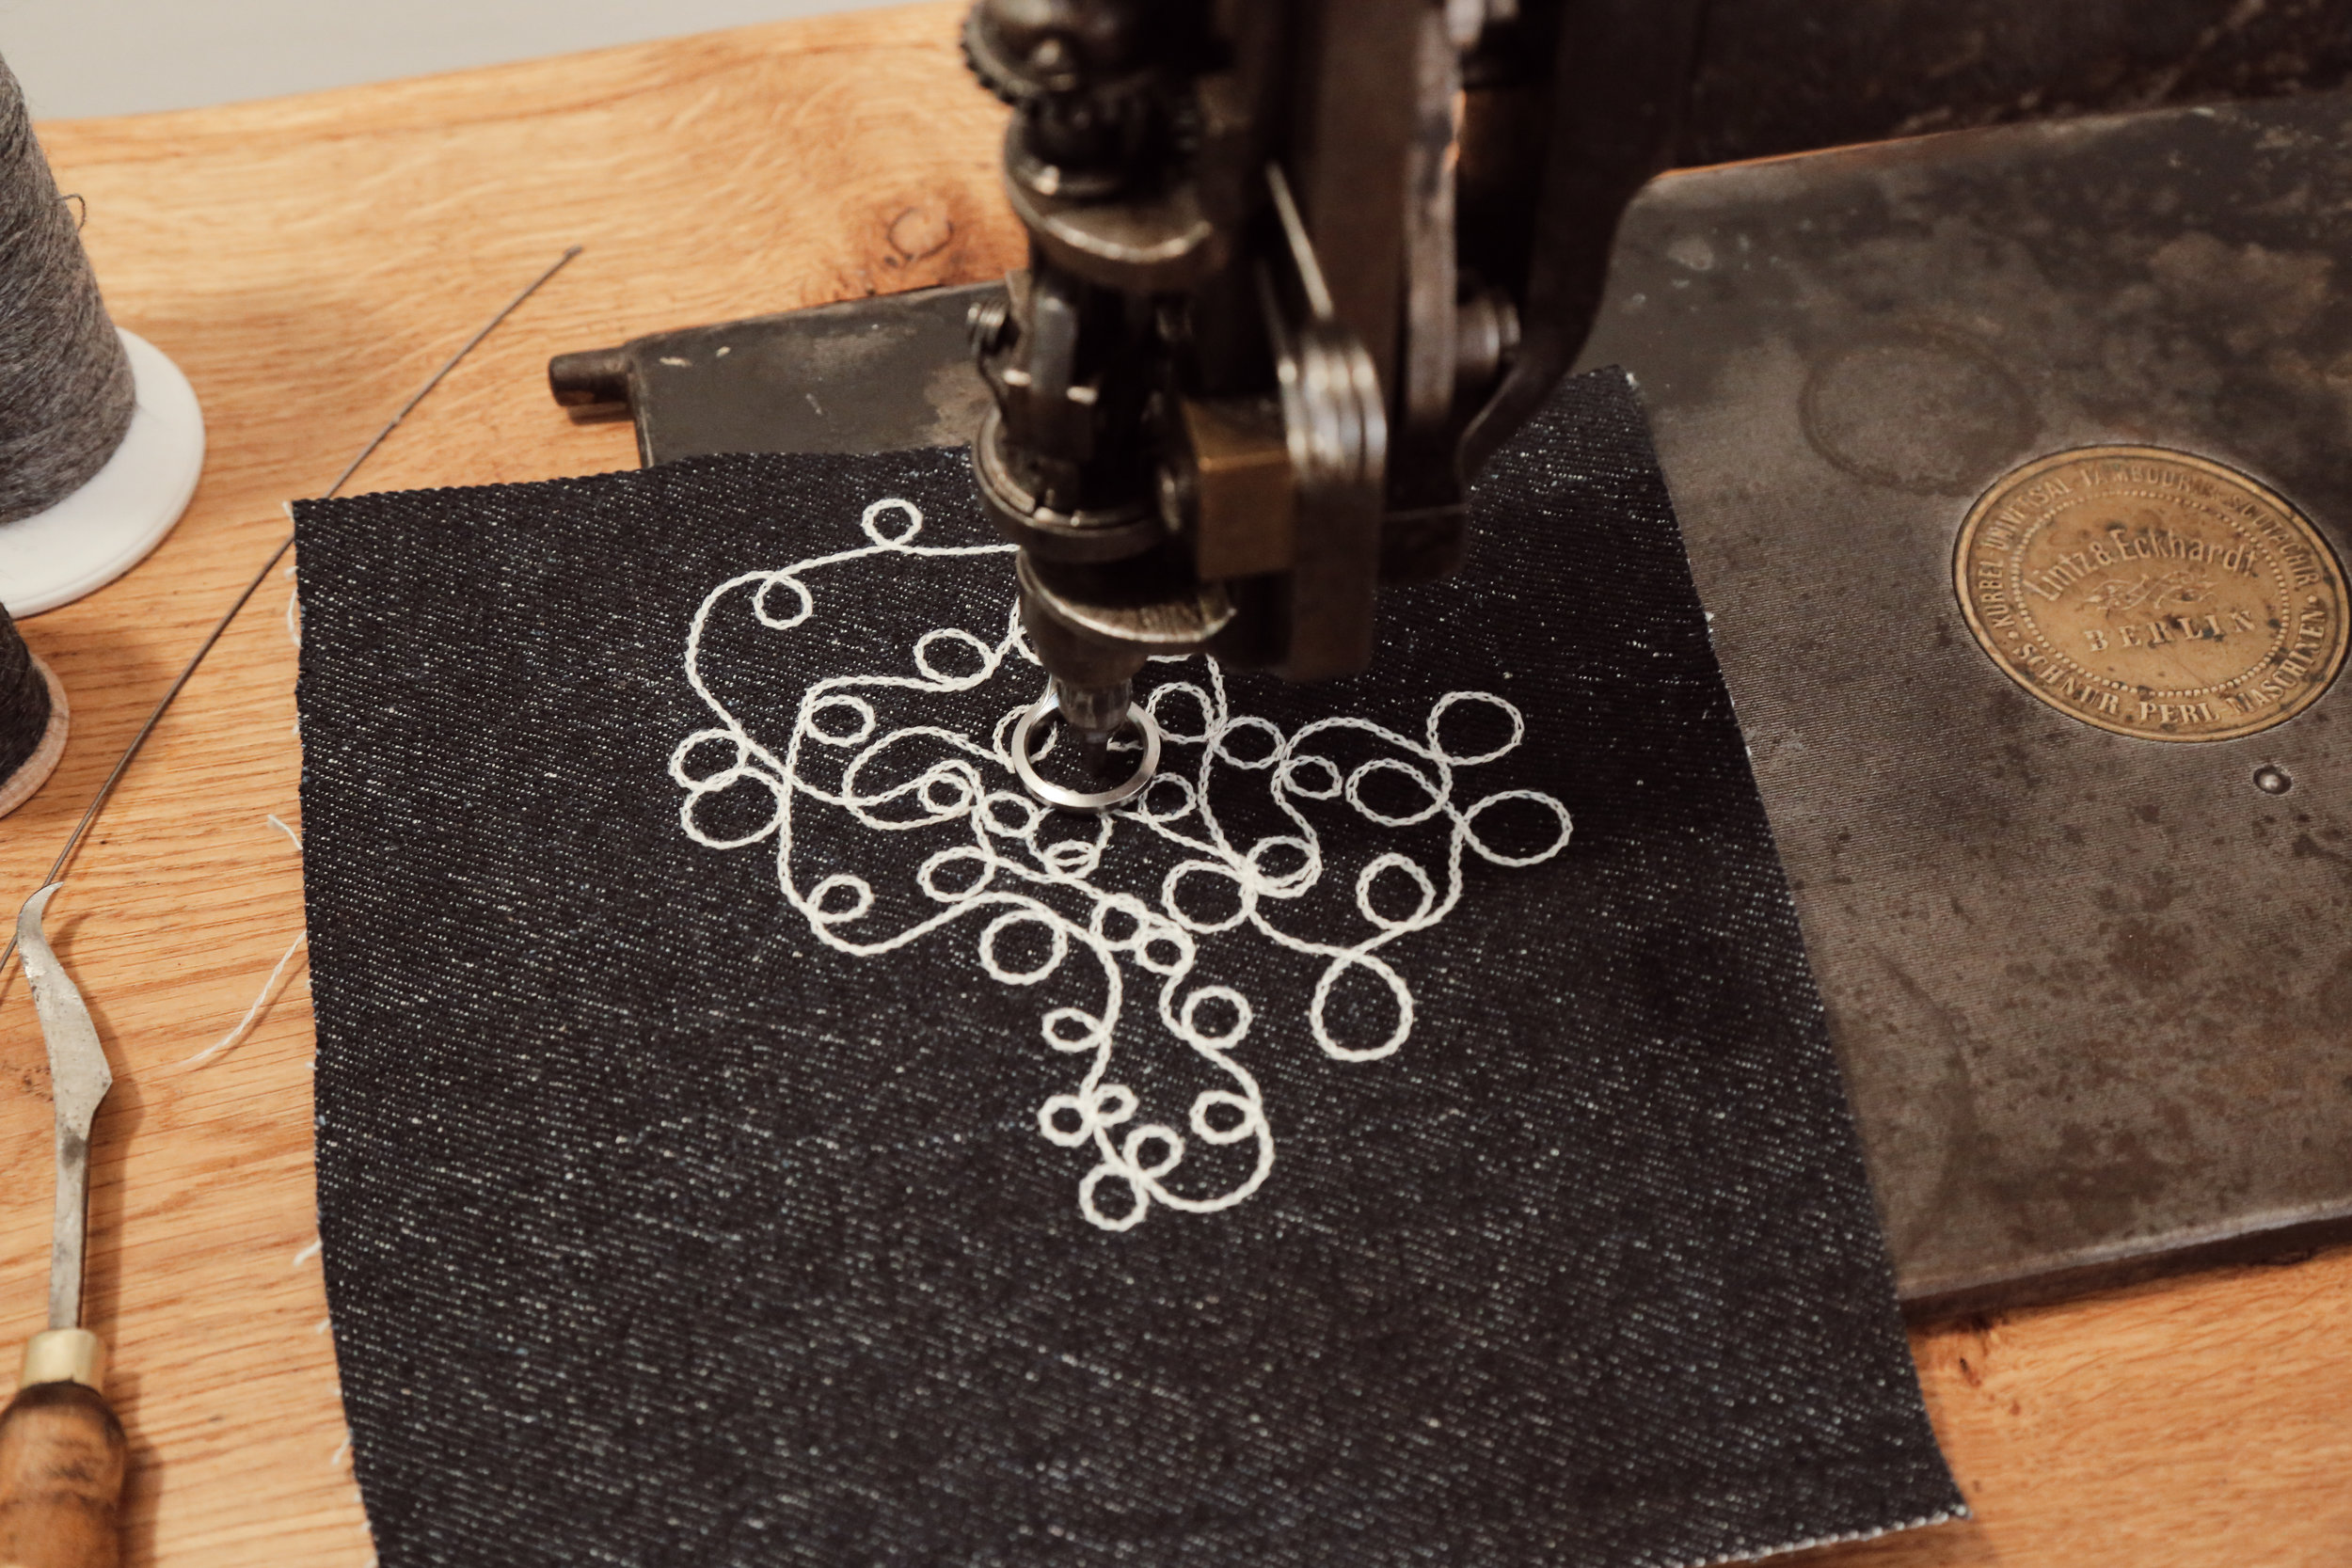 Chainstich Machine Chain Stitch Handcrank Saint Chains Kurbelstickmaschine Stickmaschine